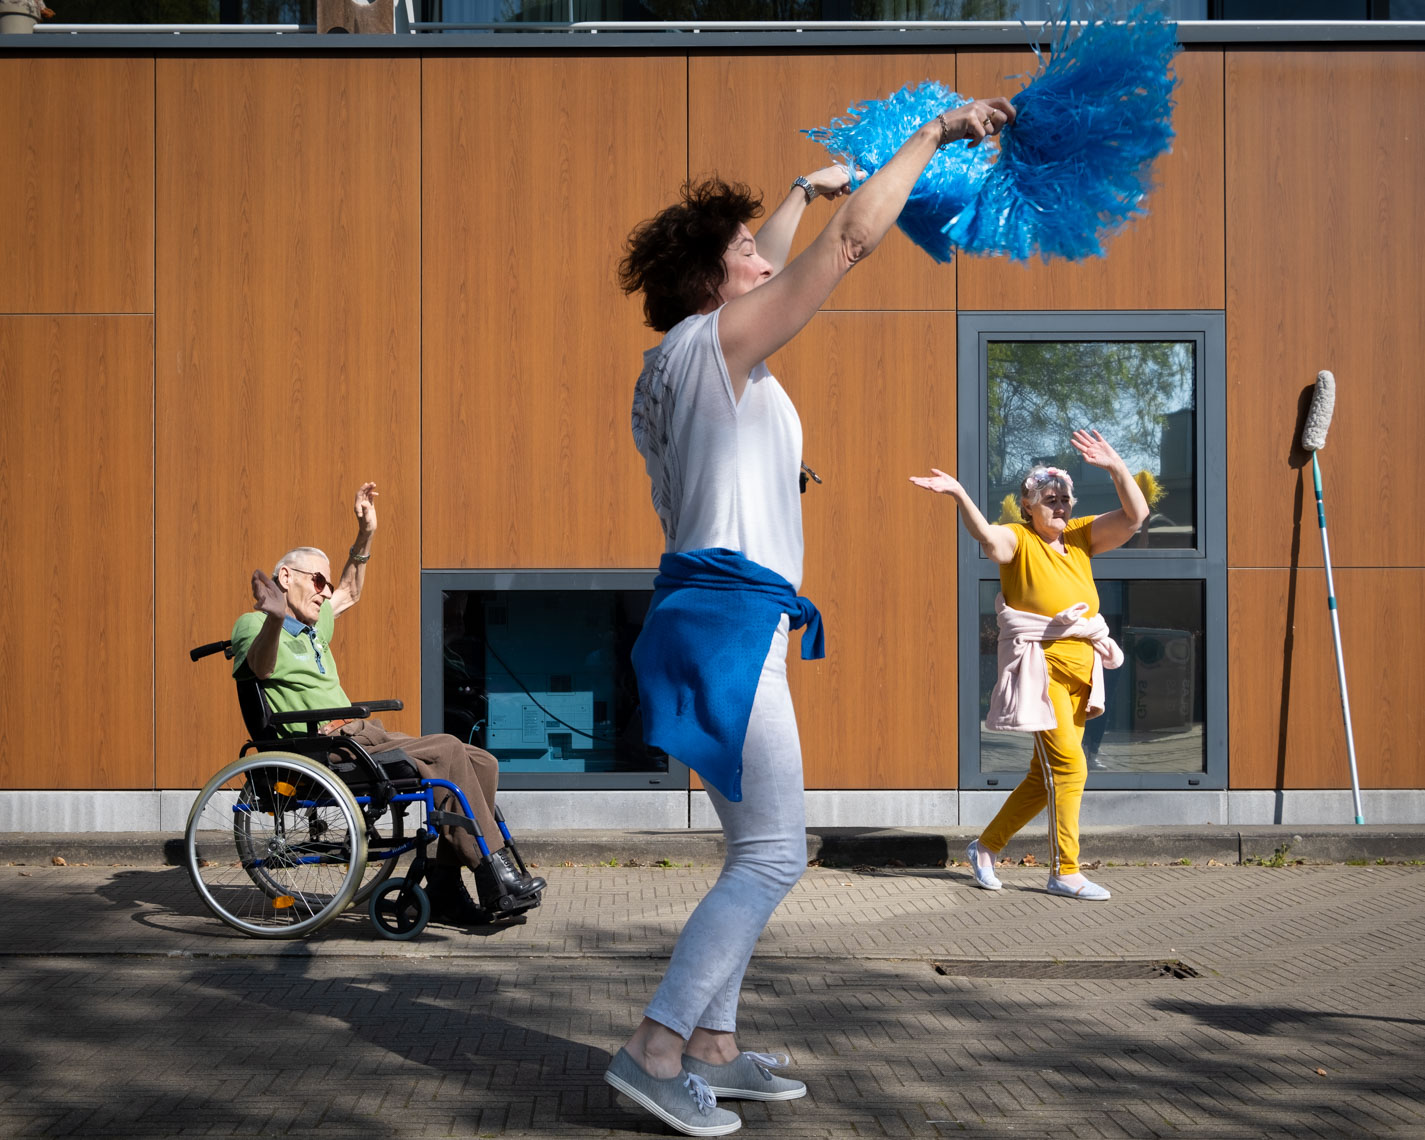 Dansen aan Dinestencentrum De Wilg in Willebroek